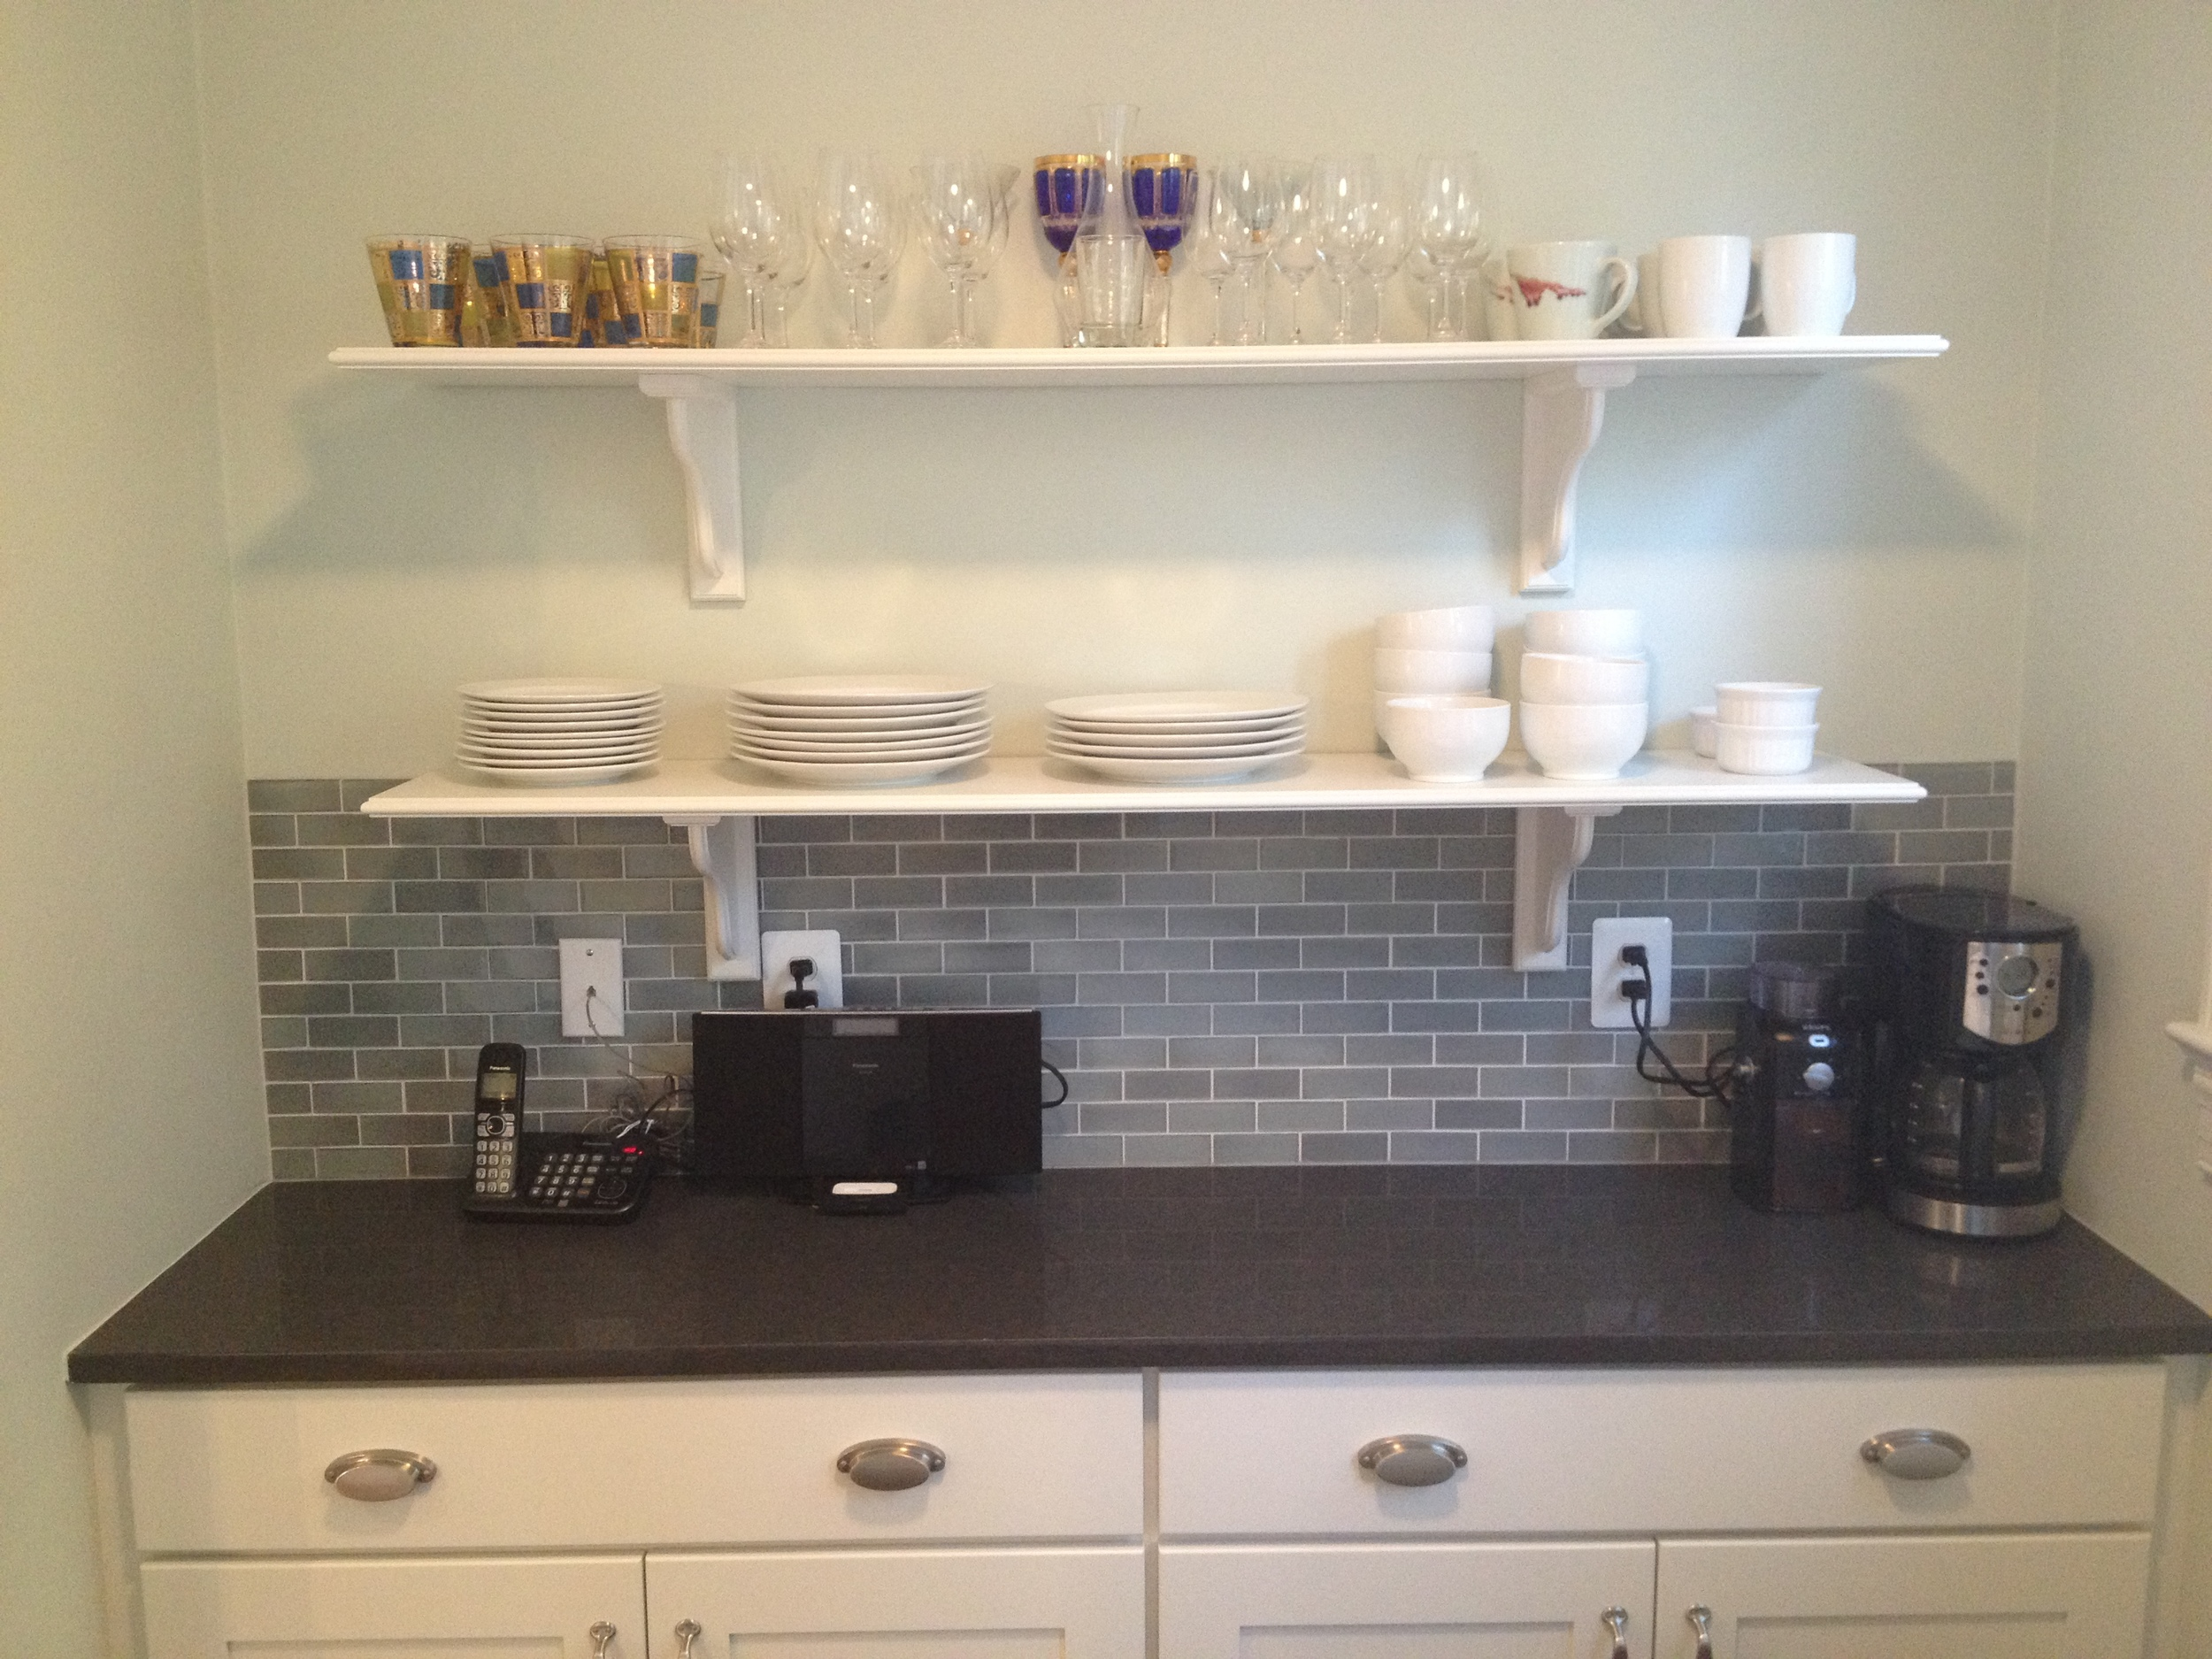 We added shallow lower cabinets, a strip of countertop, and open shelves to the wall of the eating area